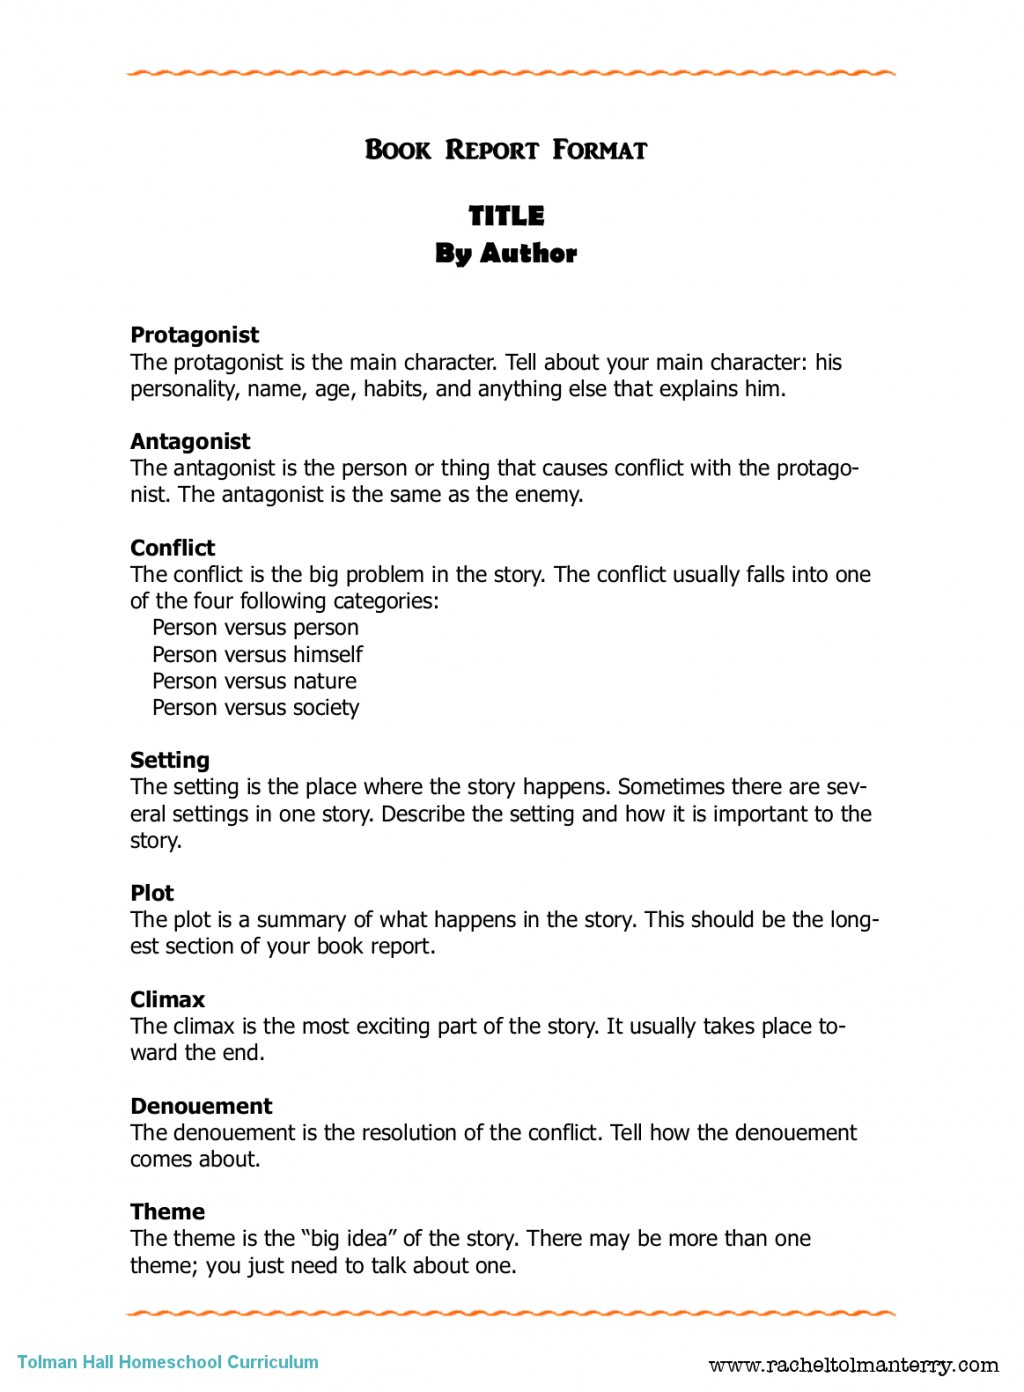 010 Essay Example College Application Examplesarvard Yale Supplementow To Write Good Bookreportformatpubl Nytimes Step By Admissions Best That Stands Out Outline About Yourself Introduction Imposing Harvard Supplement Word Count Supplemental Guide Format Large